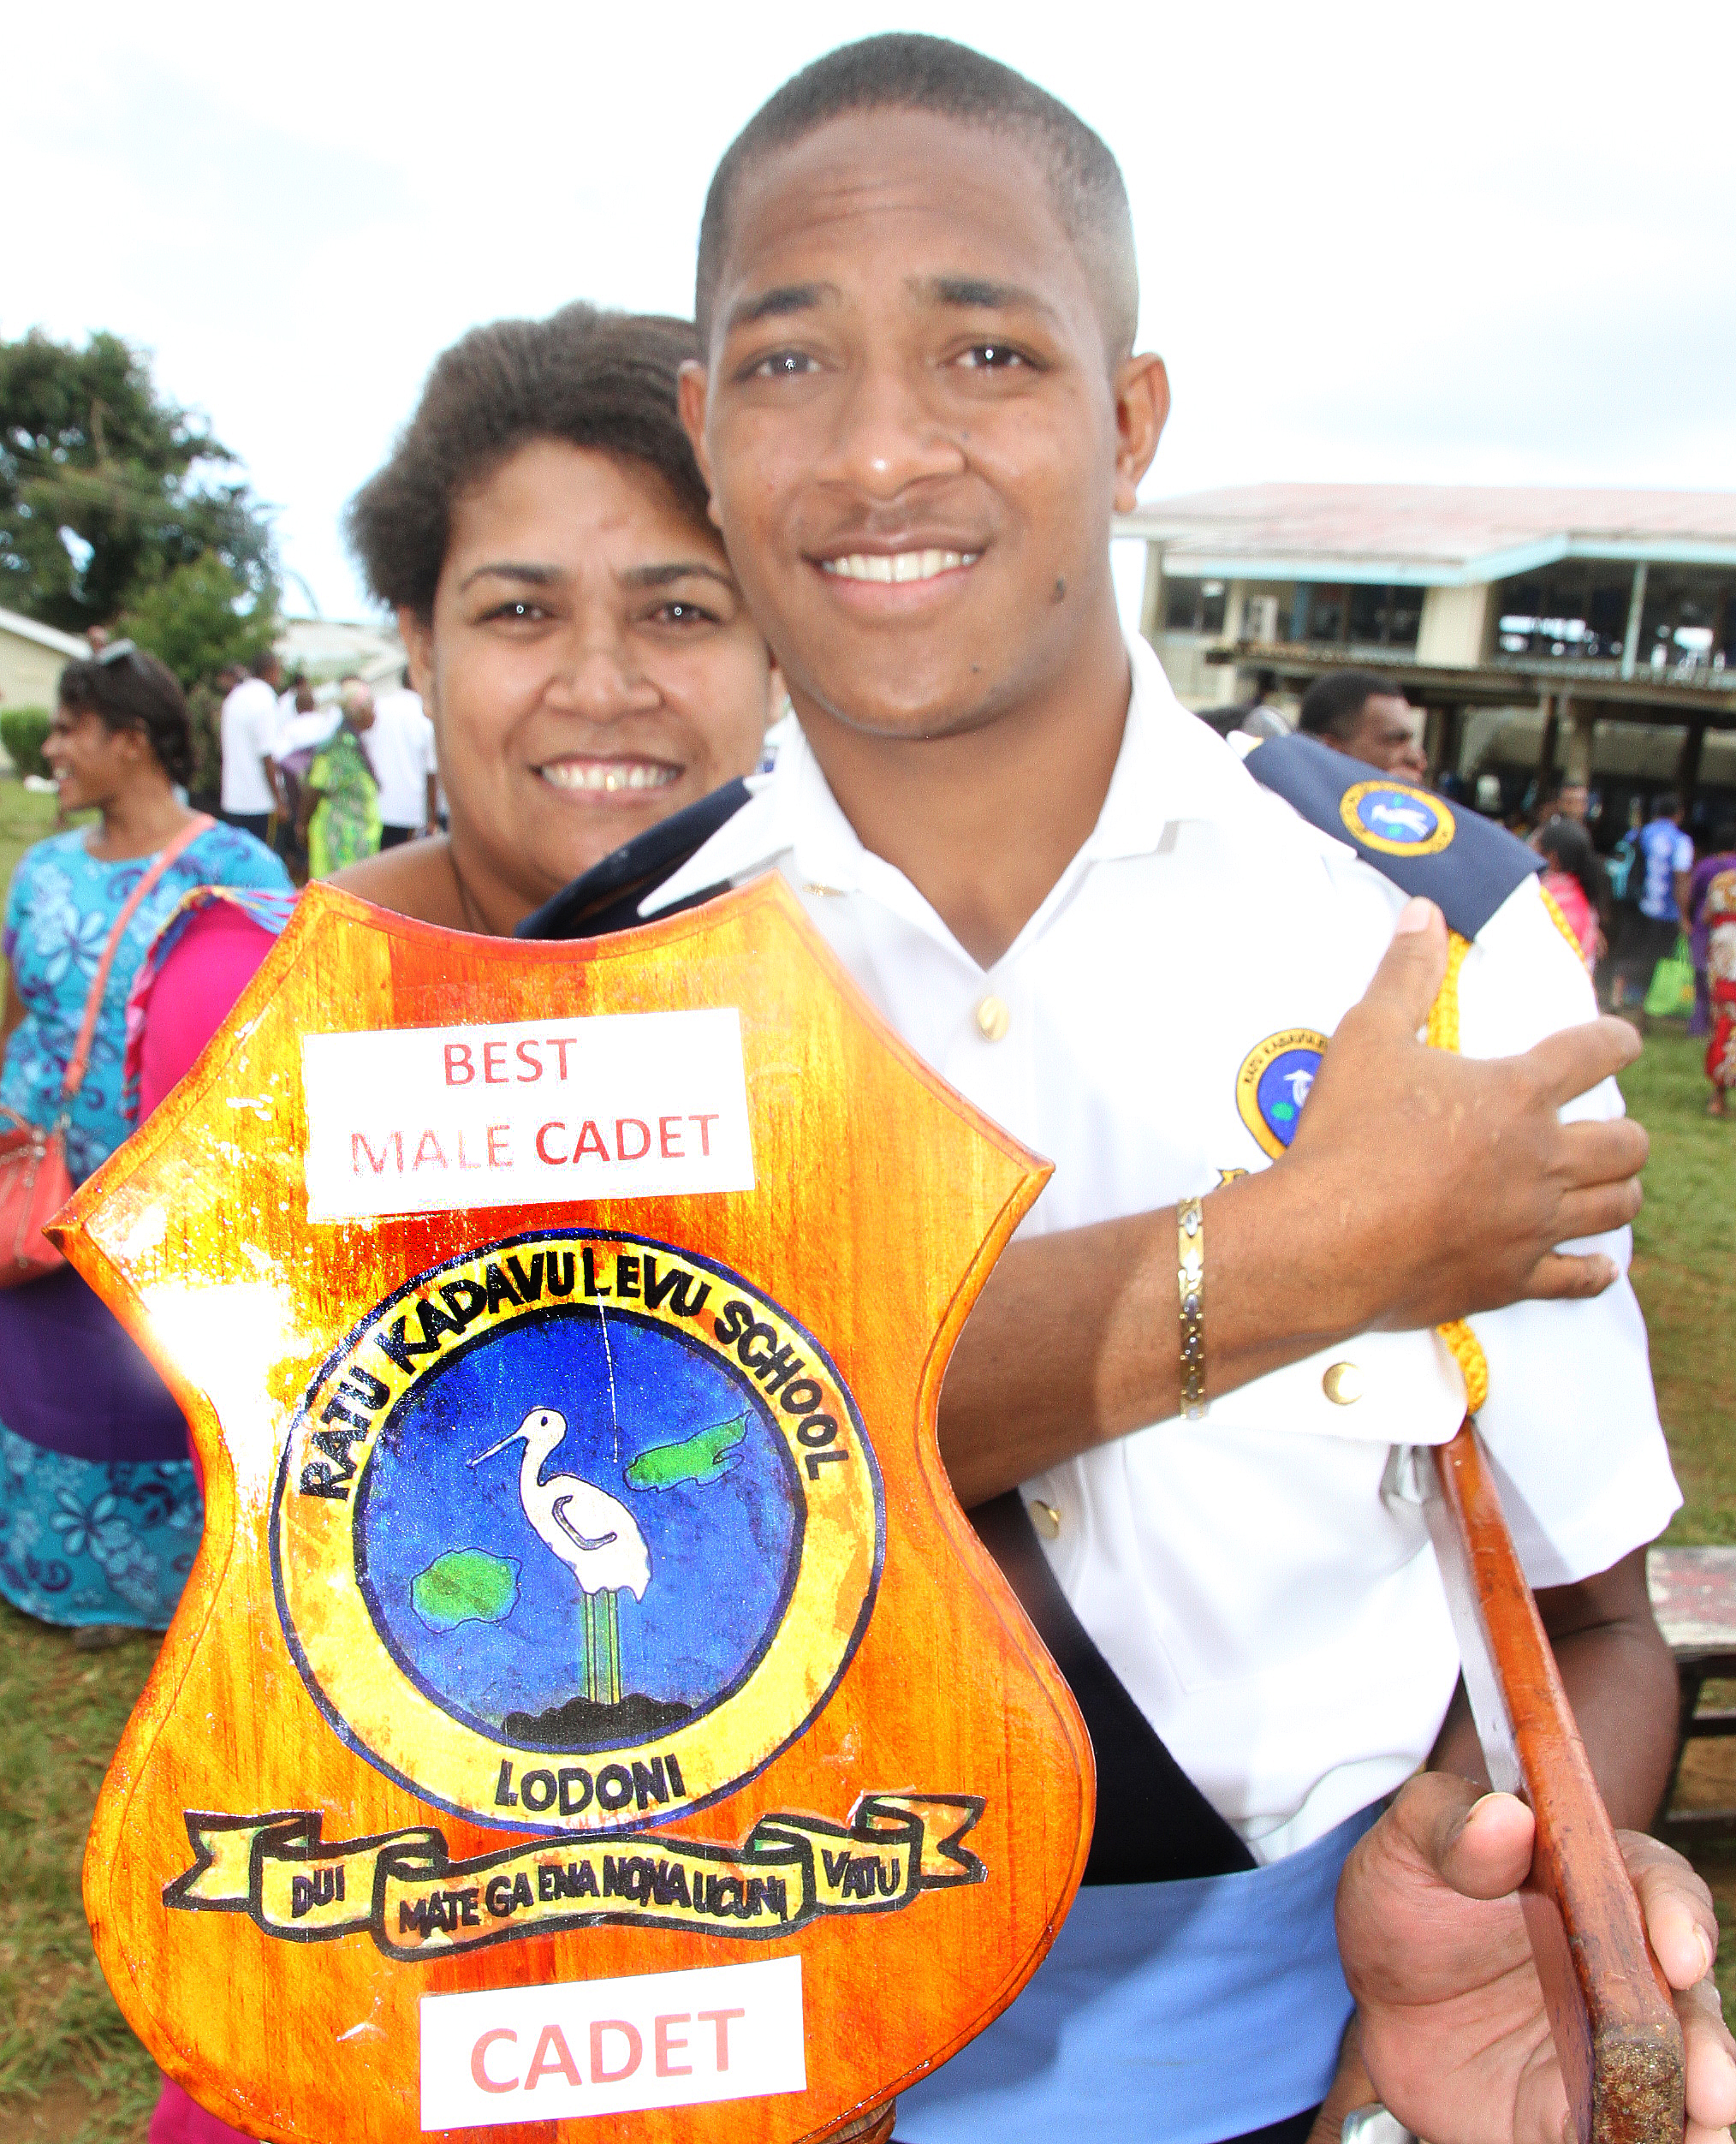 Ratu Kadavulevu School Cadet Passout Parade Best Male Cadet recipient, Luke Tamanalevu with his mother, Esiteri Delai at Lodoni, Tailevu on June 16, 2017. Photo: Ronald Kumar.